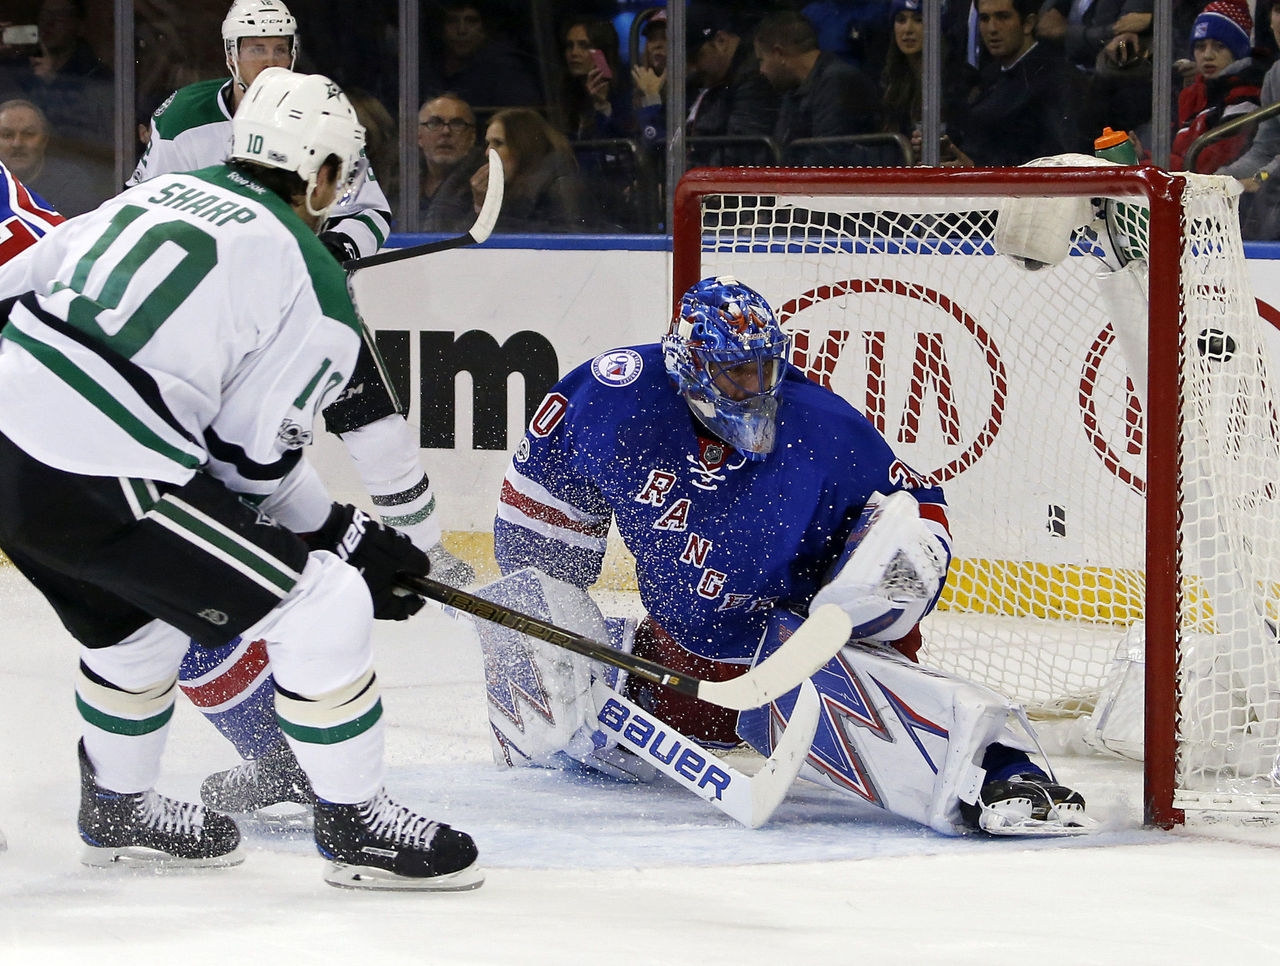 Cropped 2017 01 18t005619z 1671163194 nocid rtrmadp 3 nhl dallas stars at new york rangers